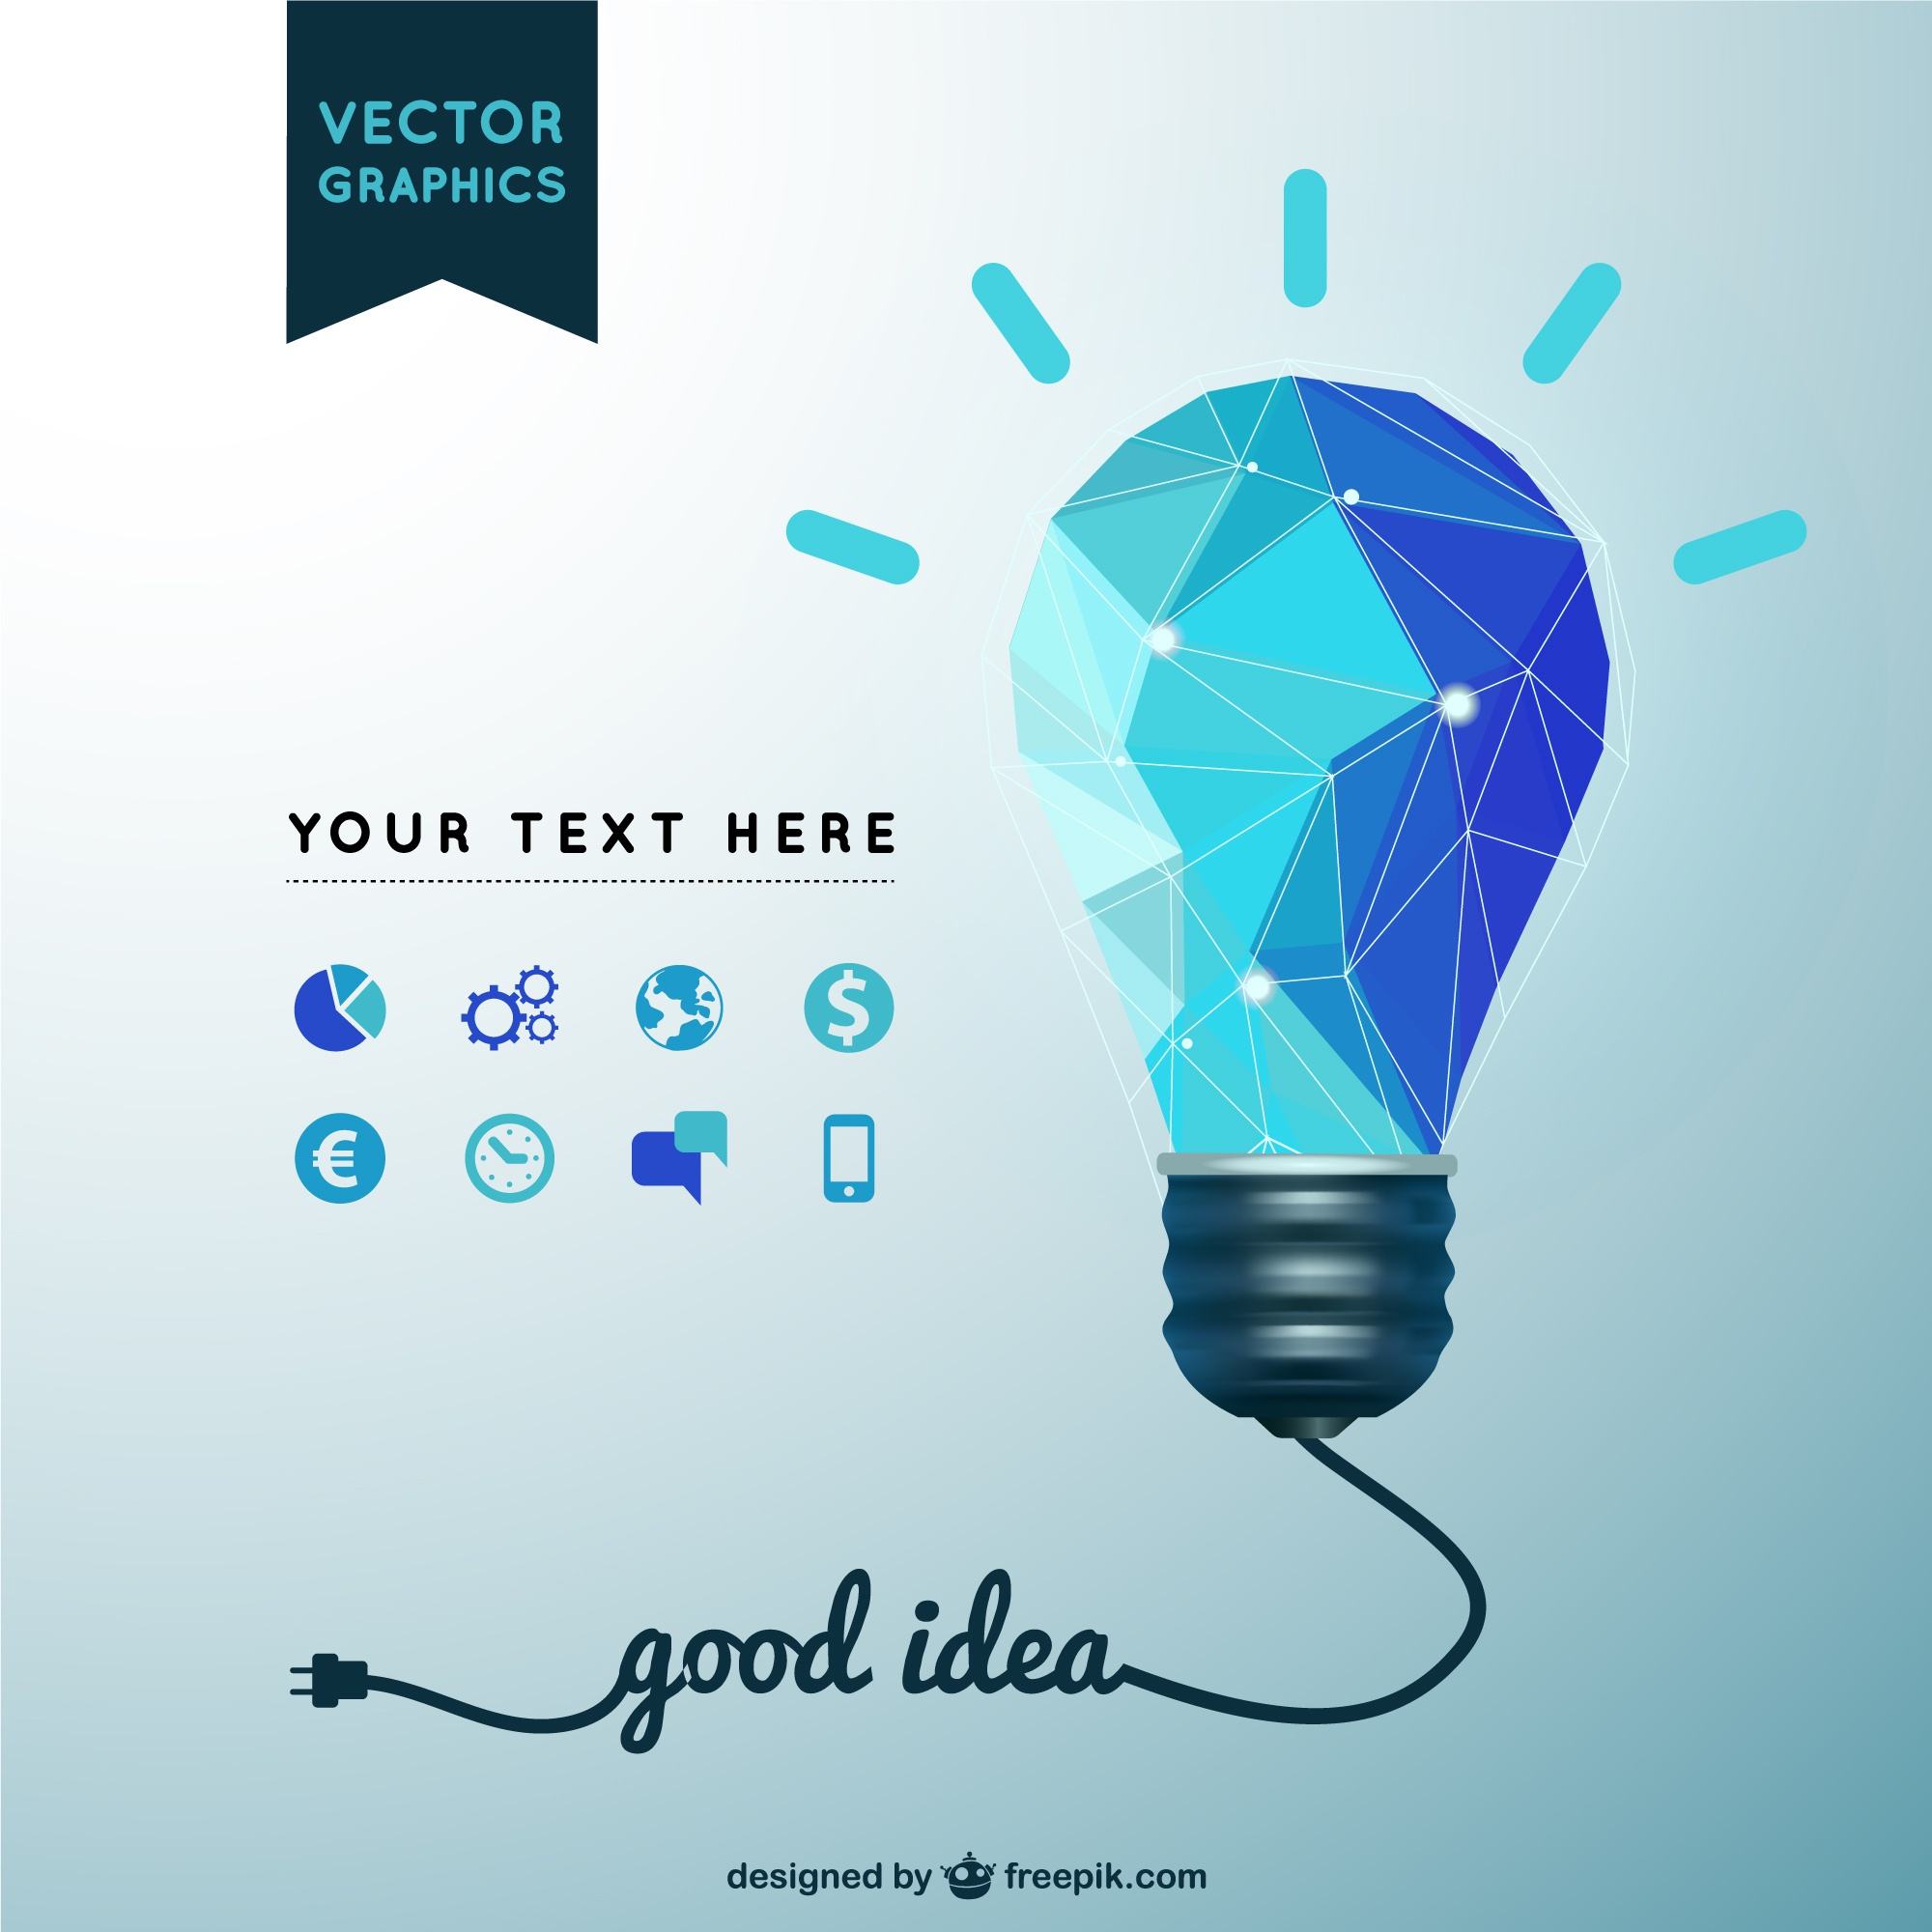 Good idea vector with light bulb